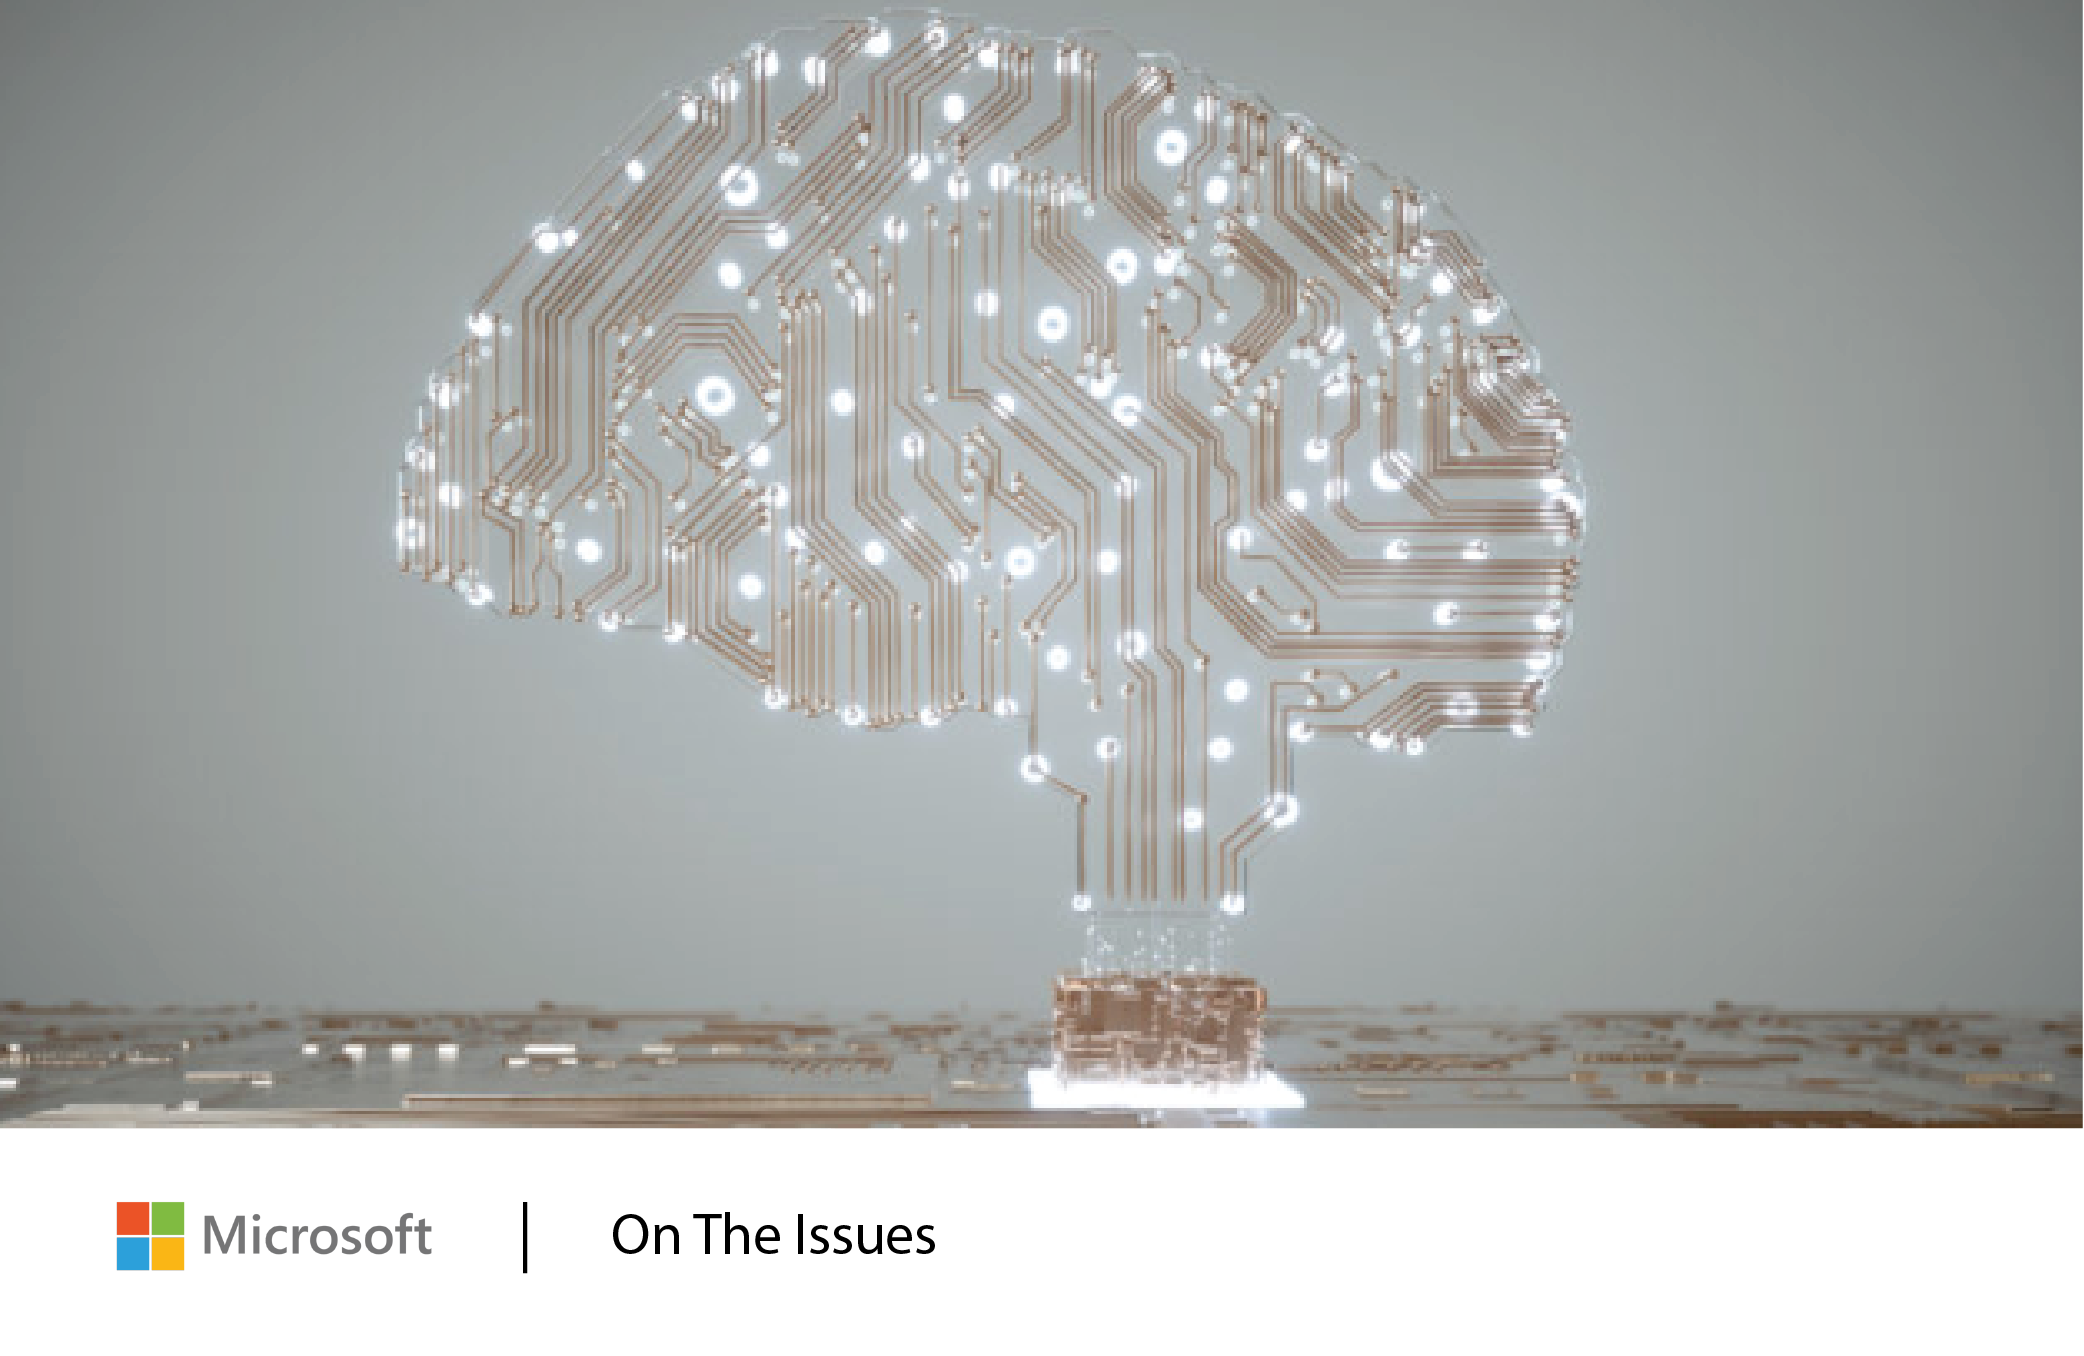 Get the latest from Microsoft on the most pressing policy issues